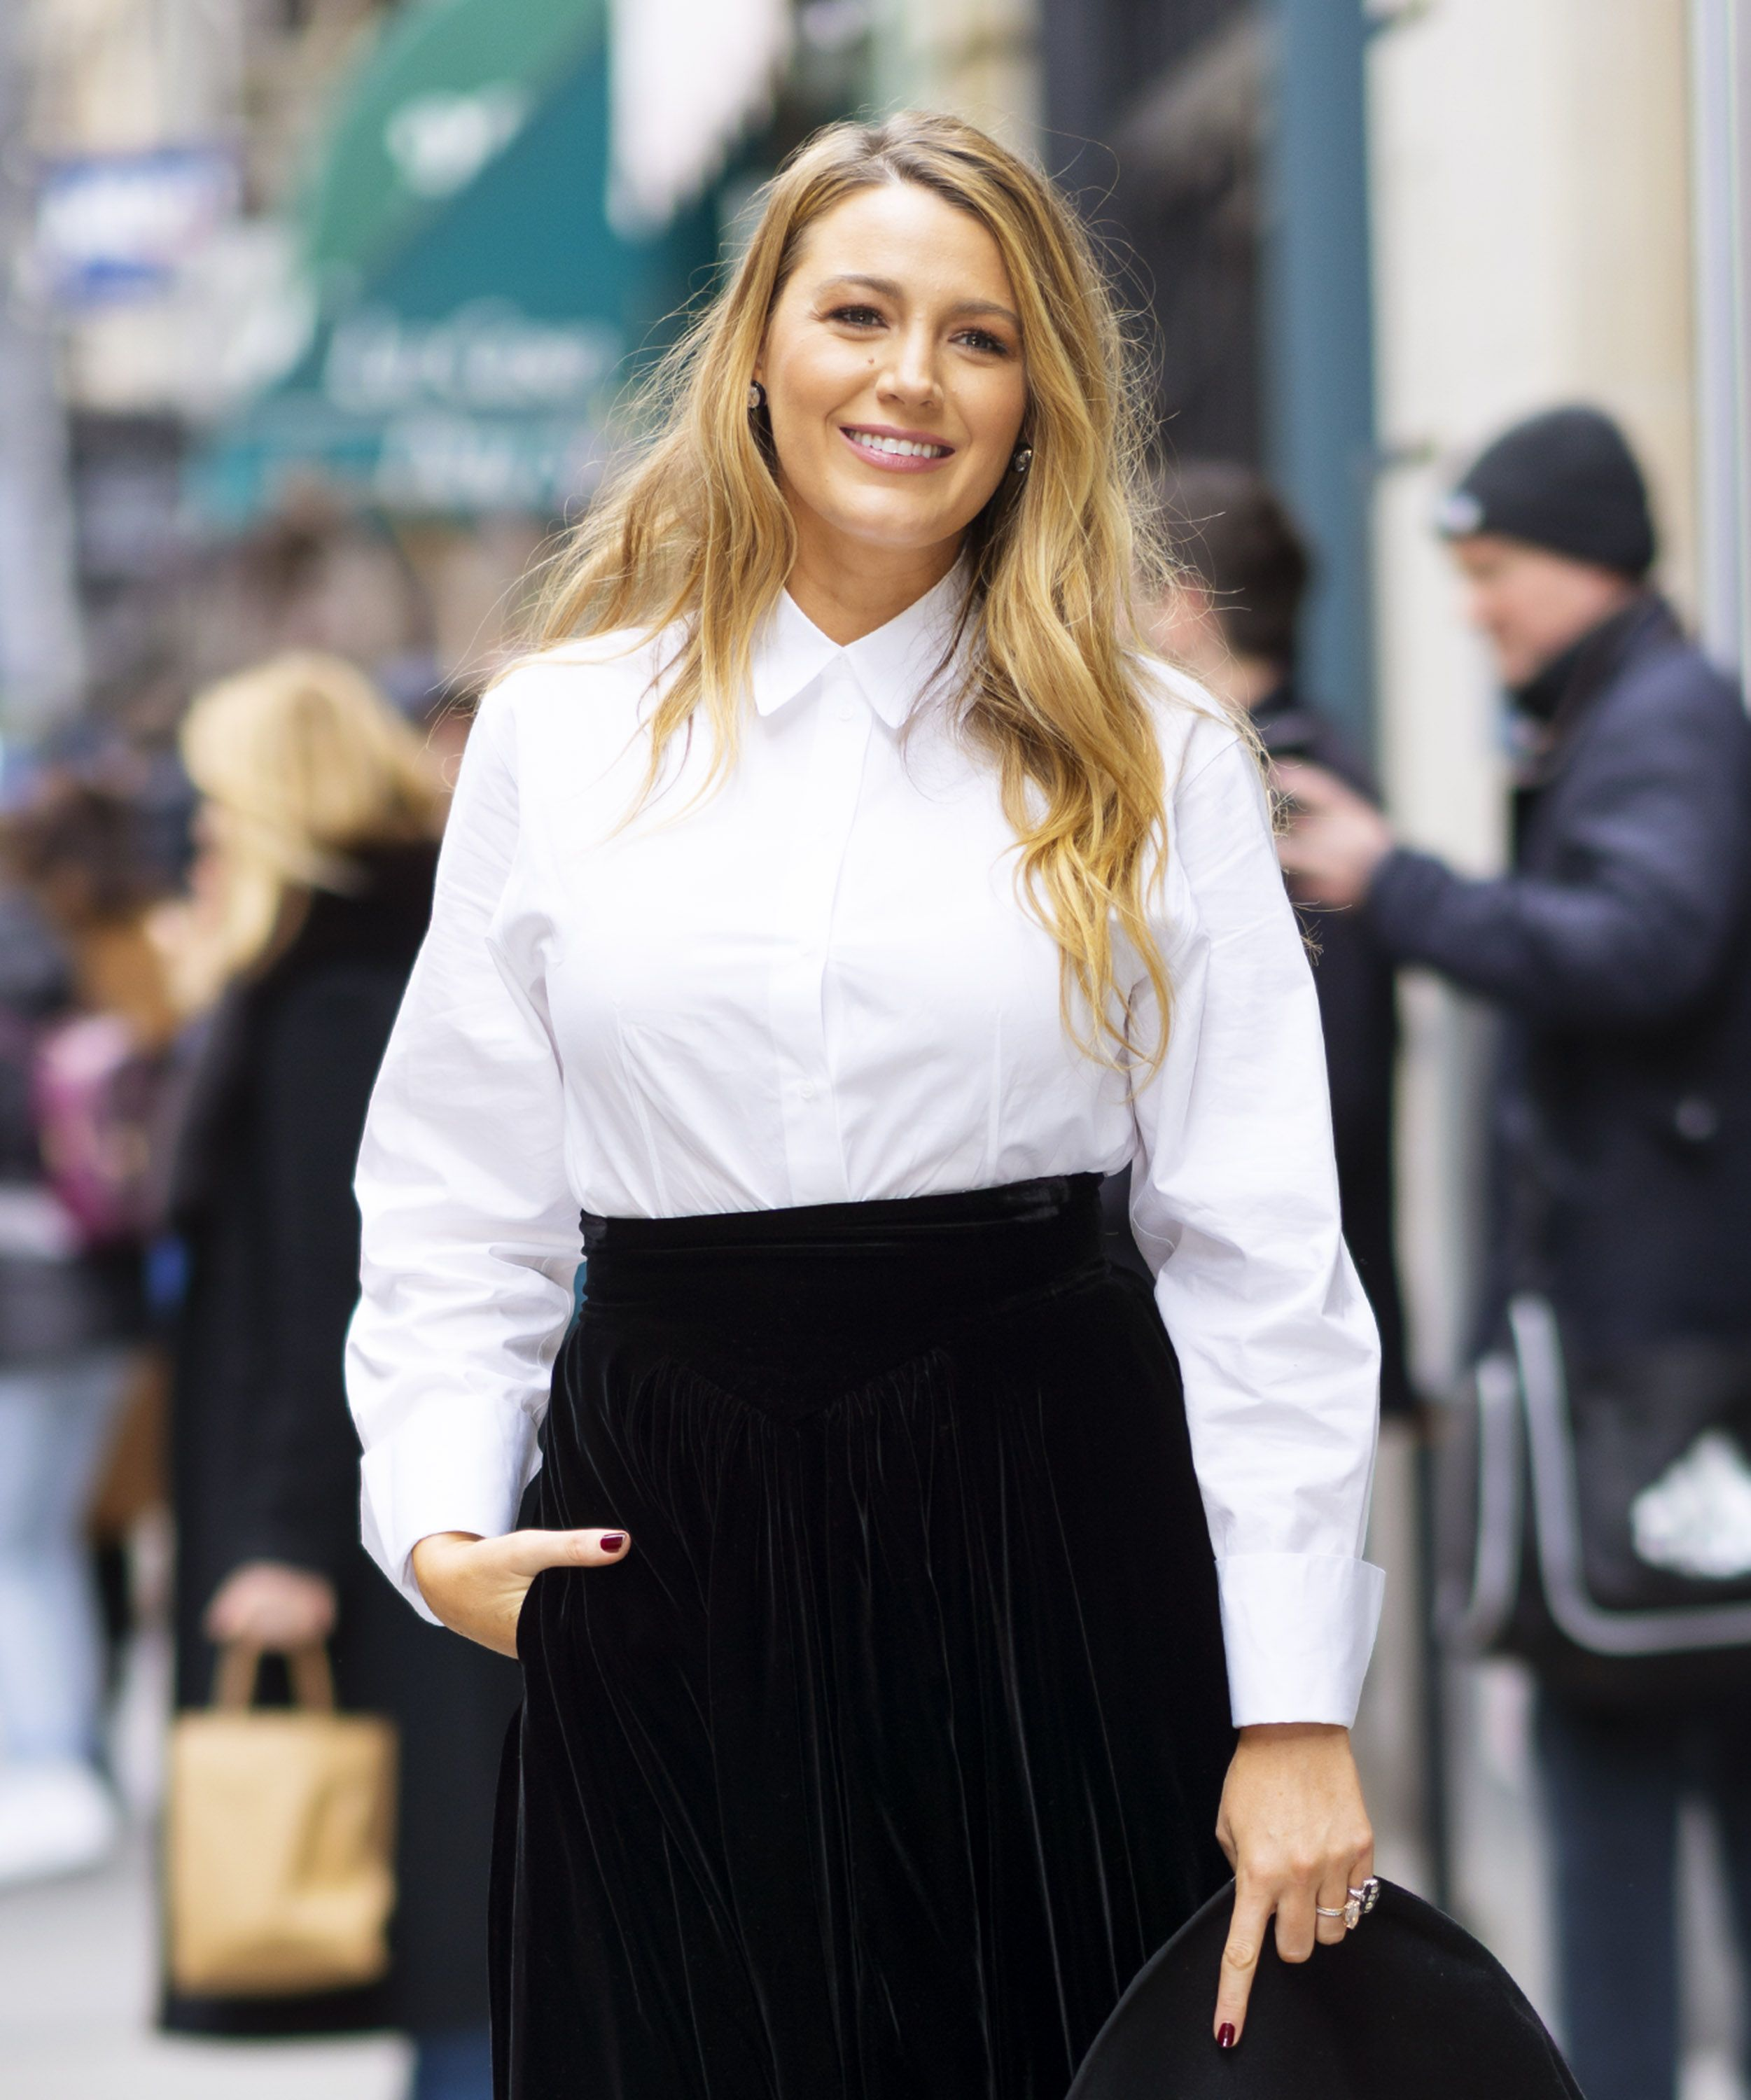 Blake Lively: her morning routine and working out with her three daughters